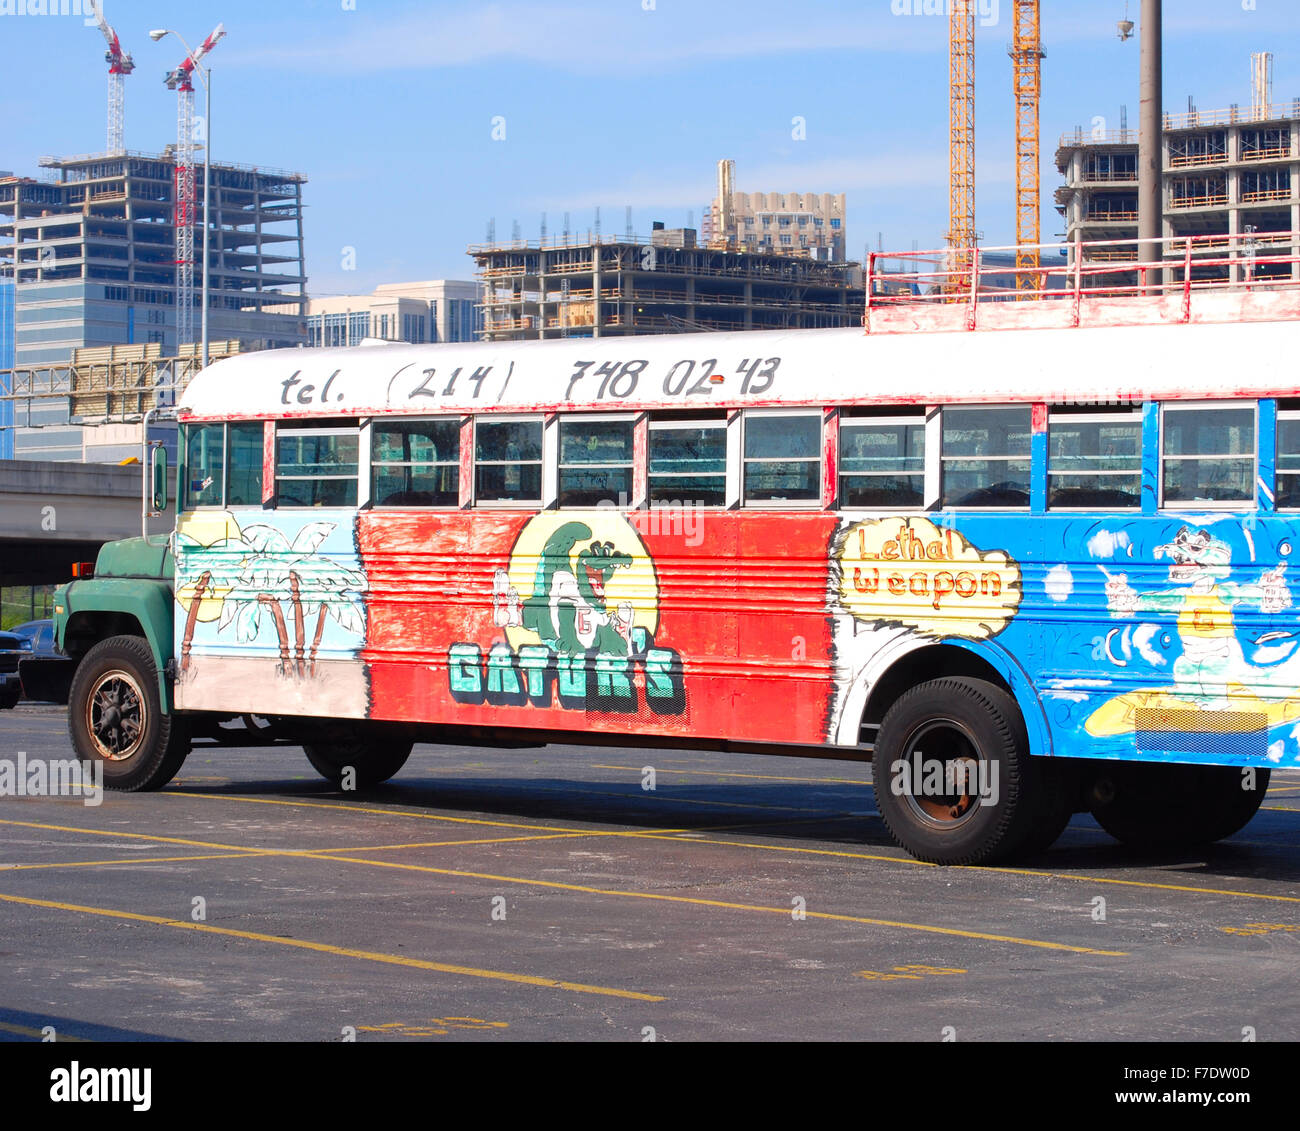 Colorful bus from Gator's Restaurant in downtown Dallas, TX. - Stock Image